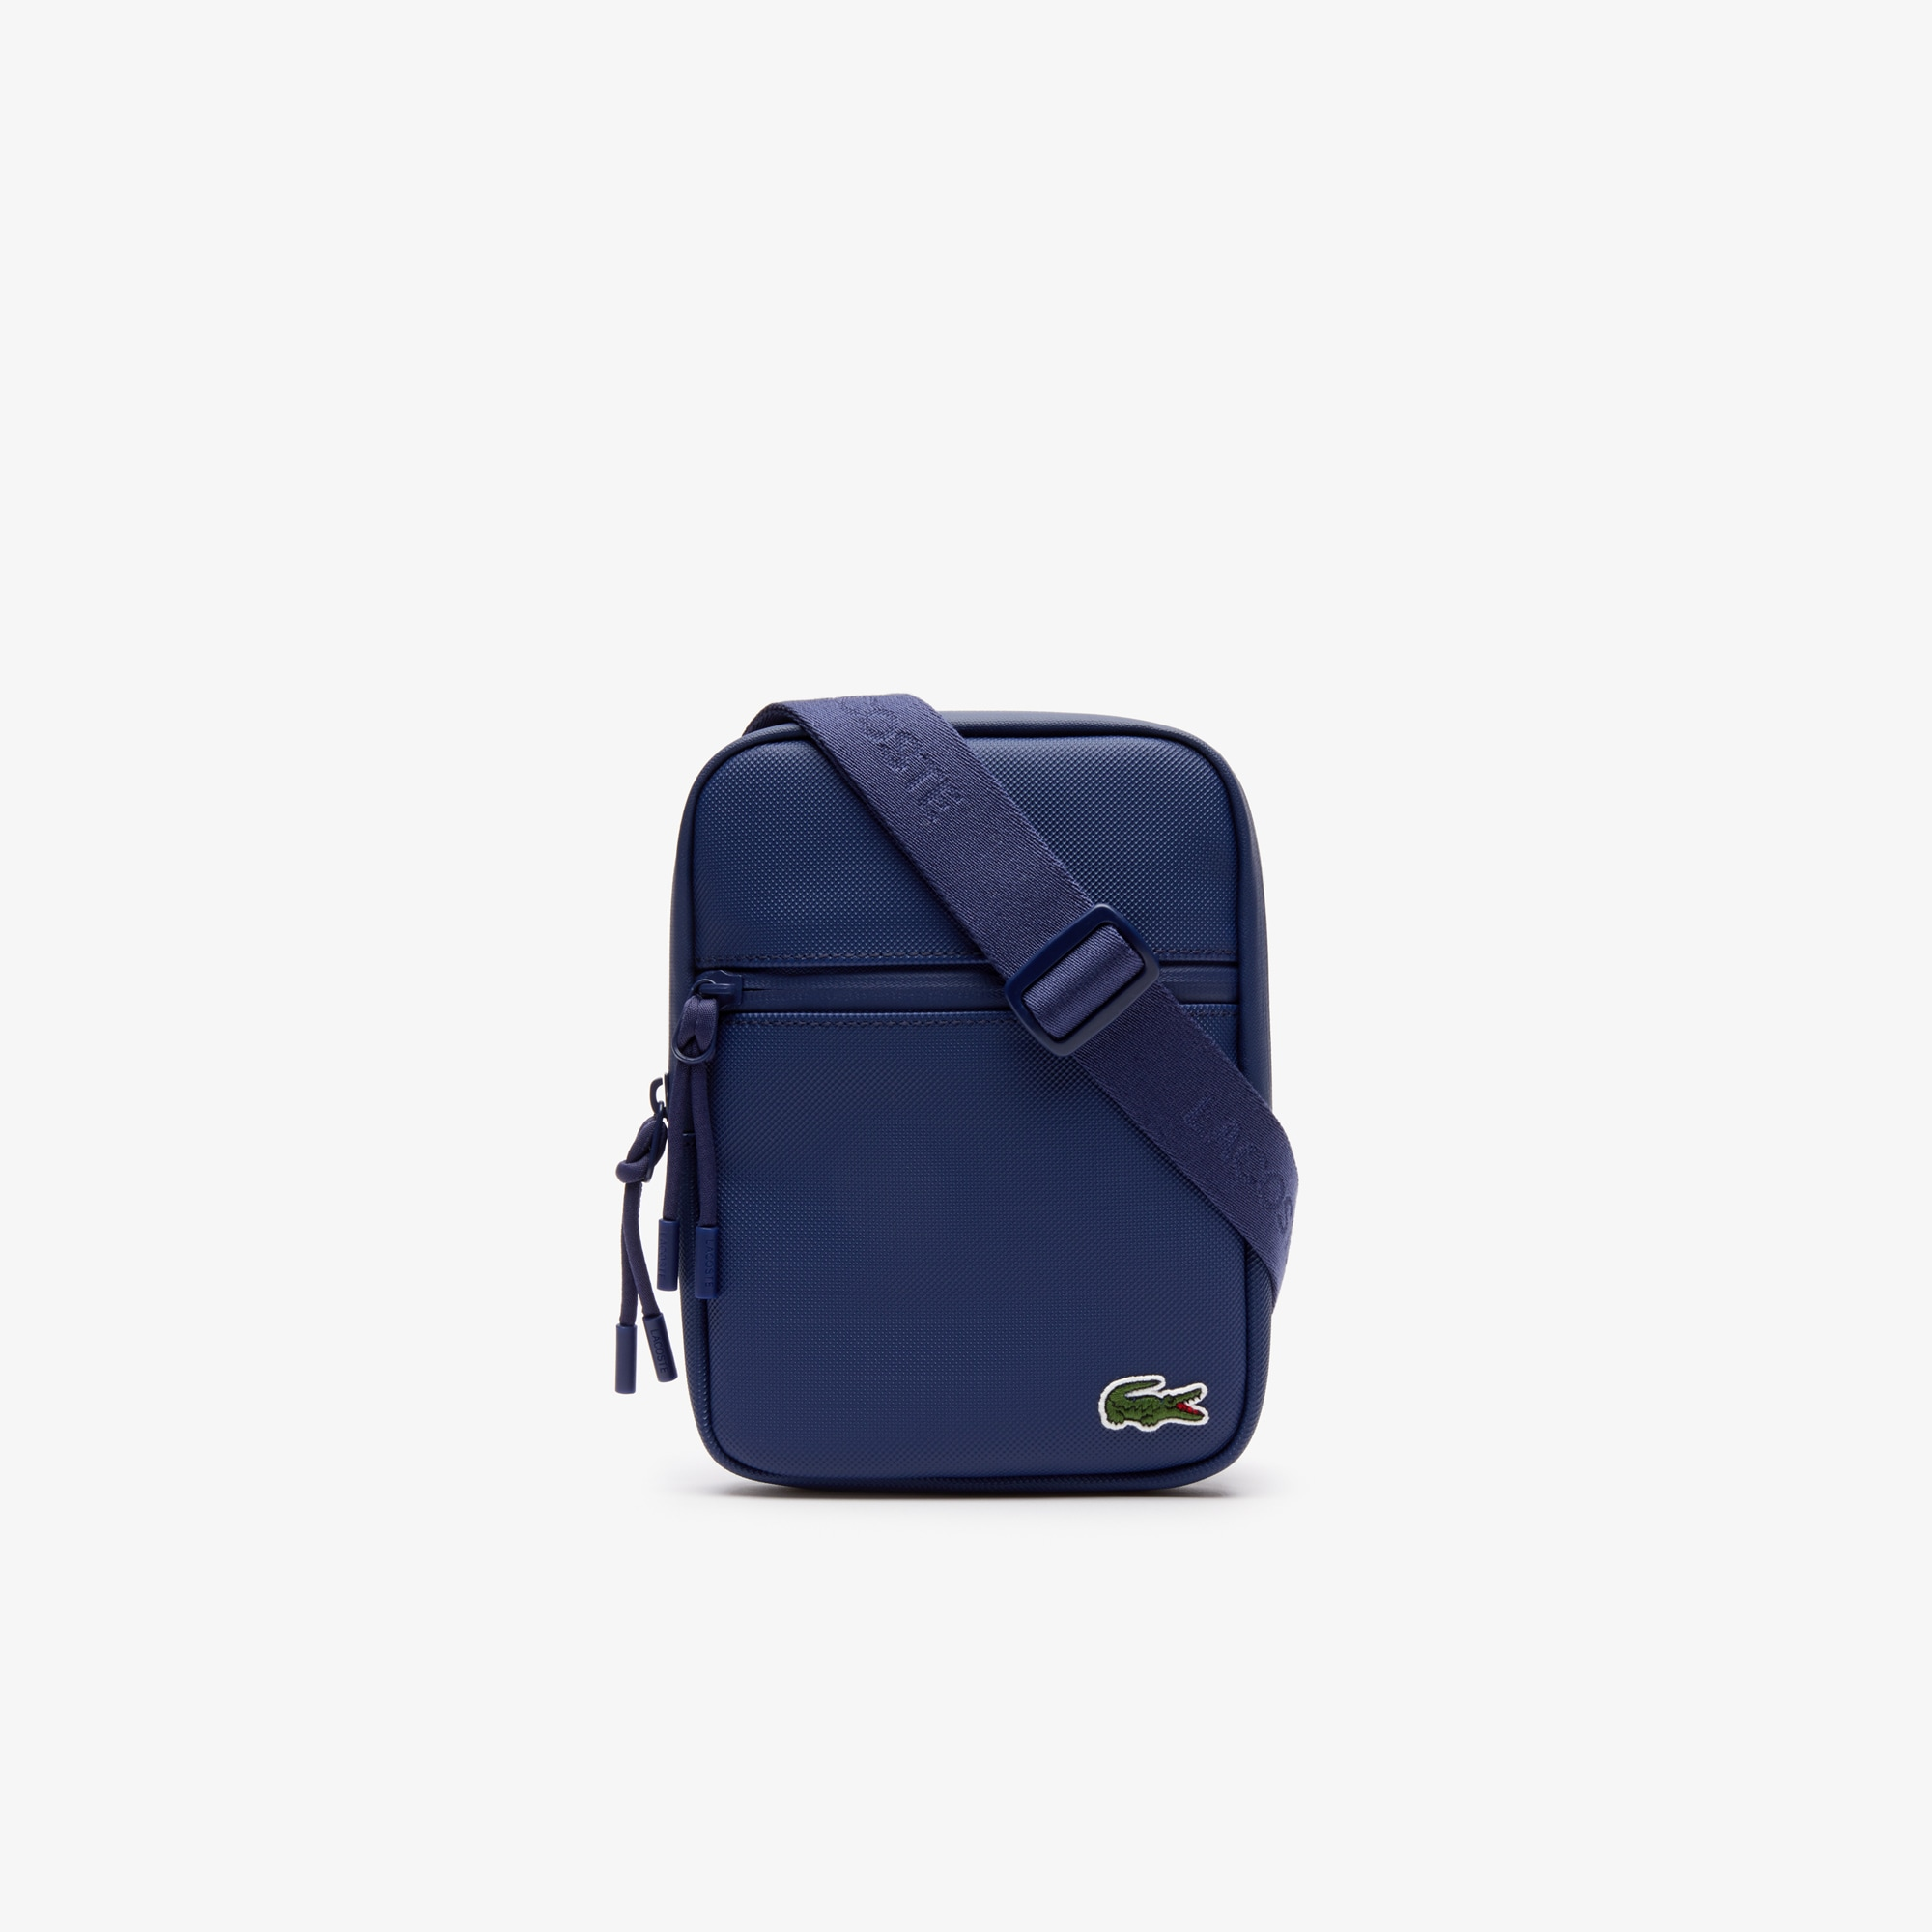 061cb877f044e Sacs et Sacoches Homme | Maroquinerie Homme | LACOSTE